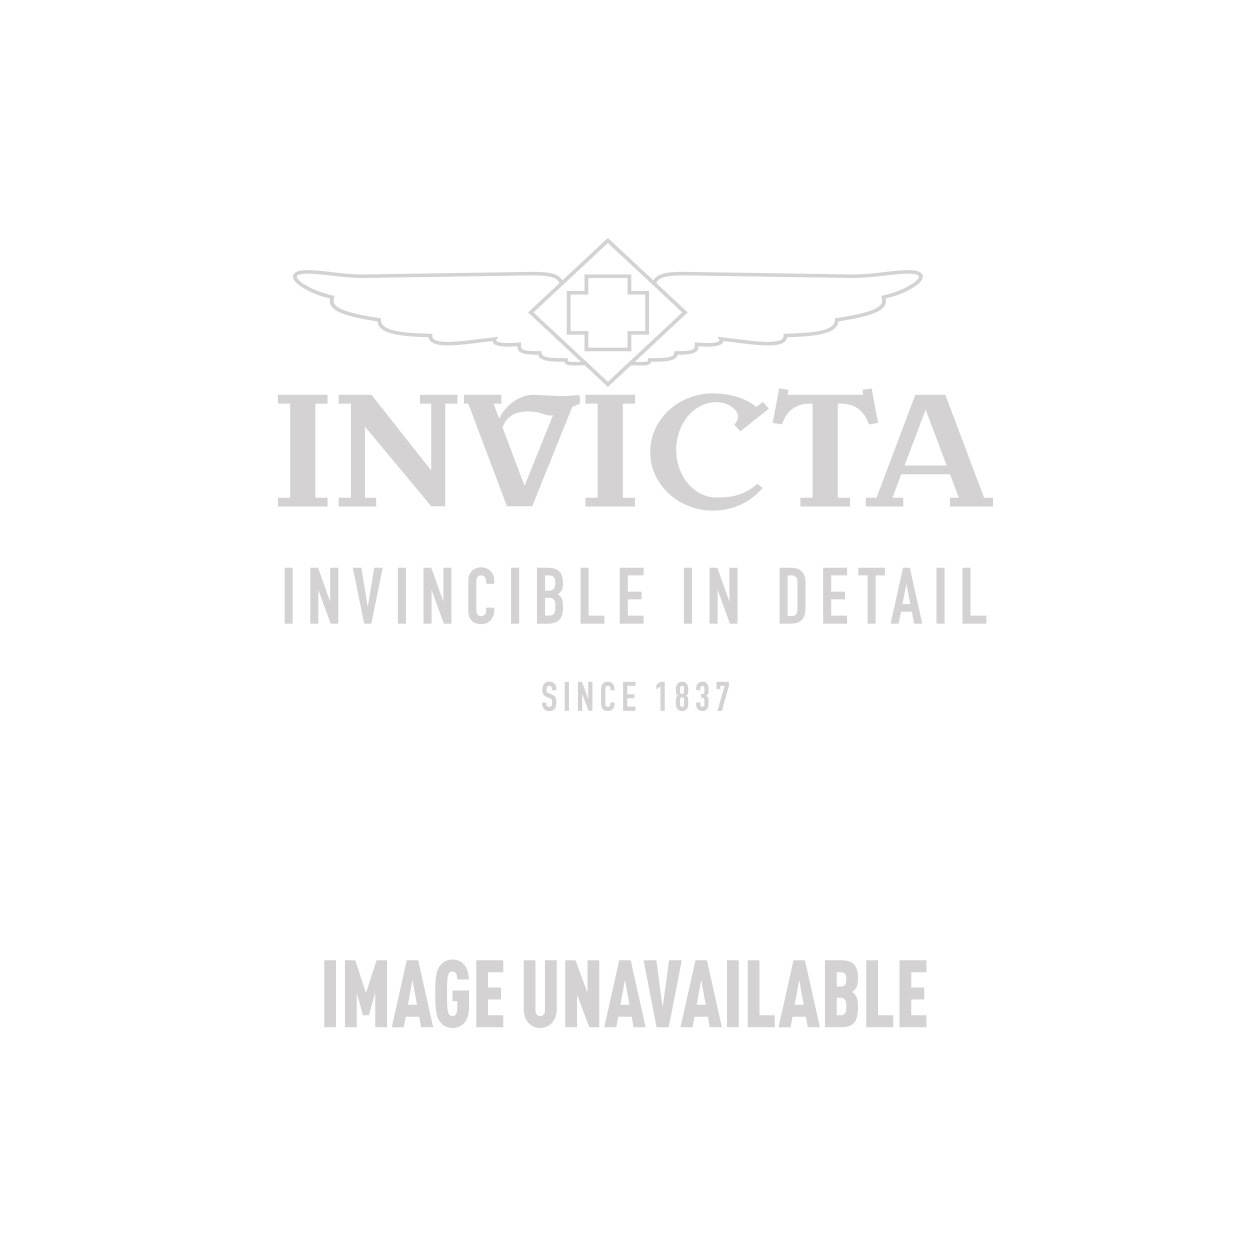 Invicta Excursion Swiss Made Quartz Watch - Gold, Stainless Steel case with Gold tone Stainless Steel band - Model 90044